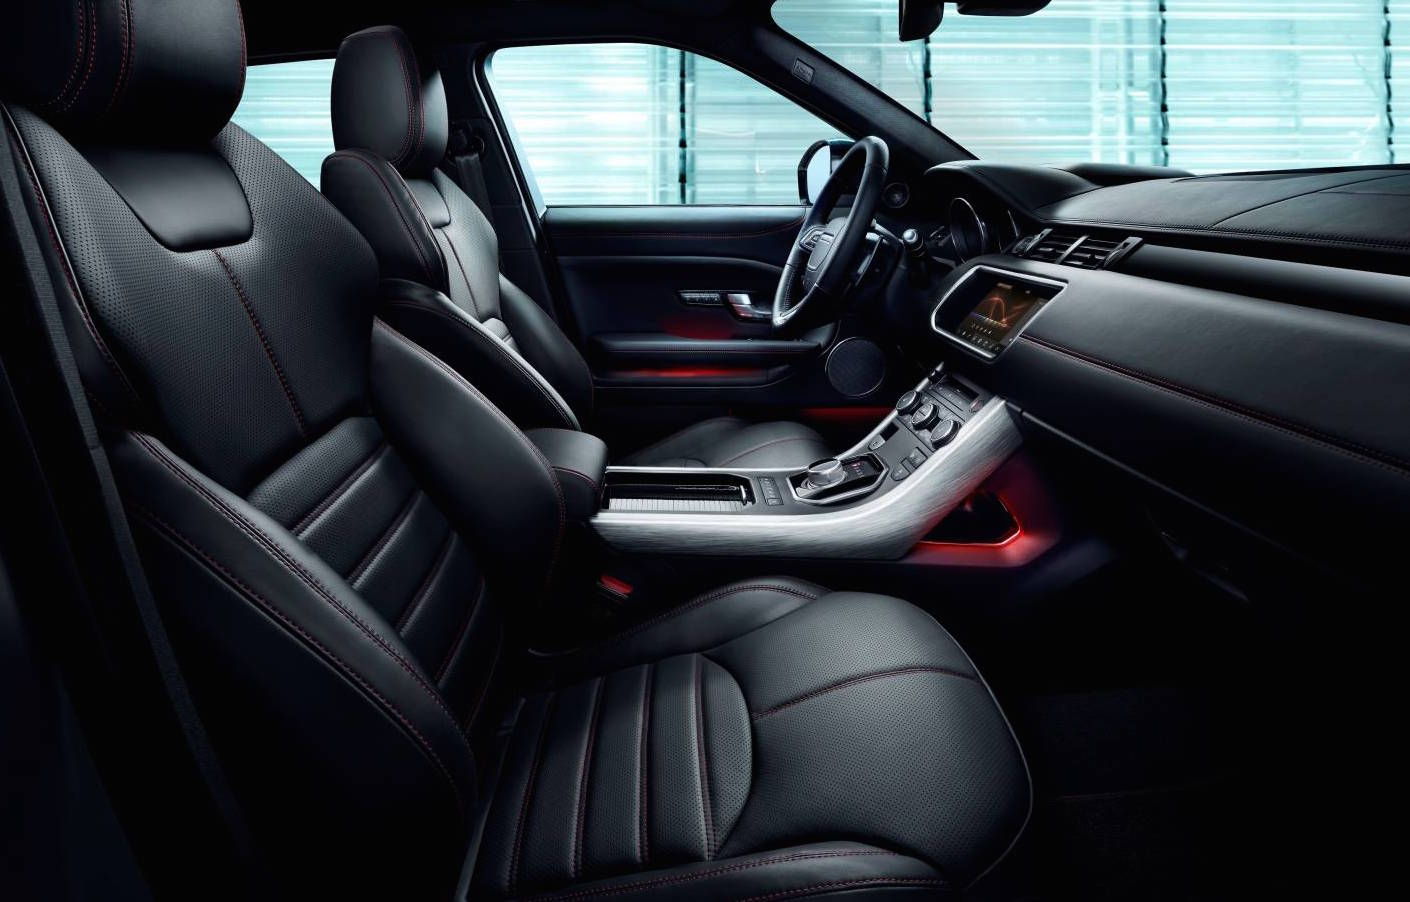 Land Rover is introducing an exclusive 'Ember' edition 3